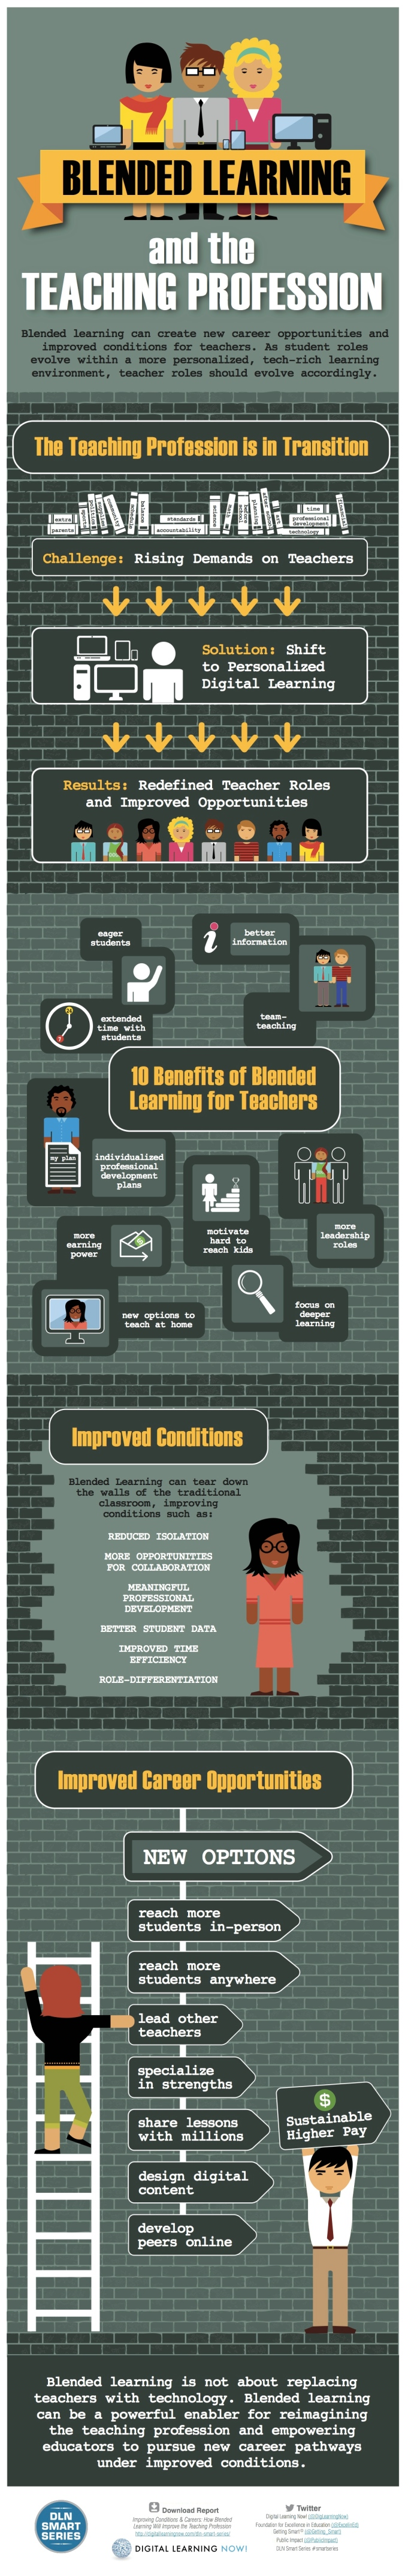 Blended-Learning-Teaching-Infographic